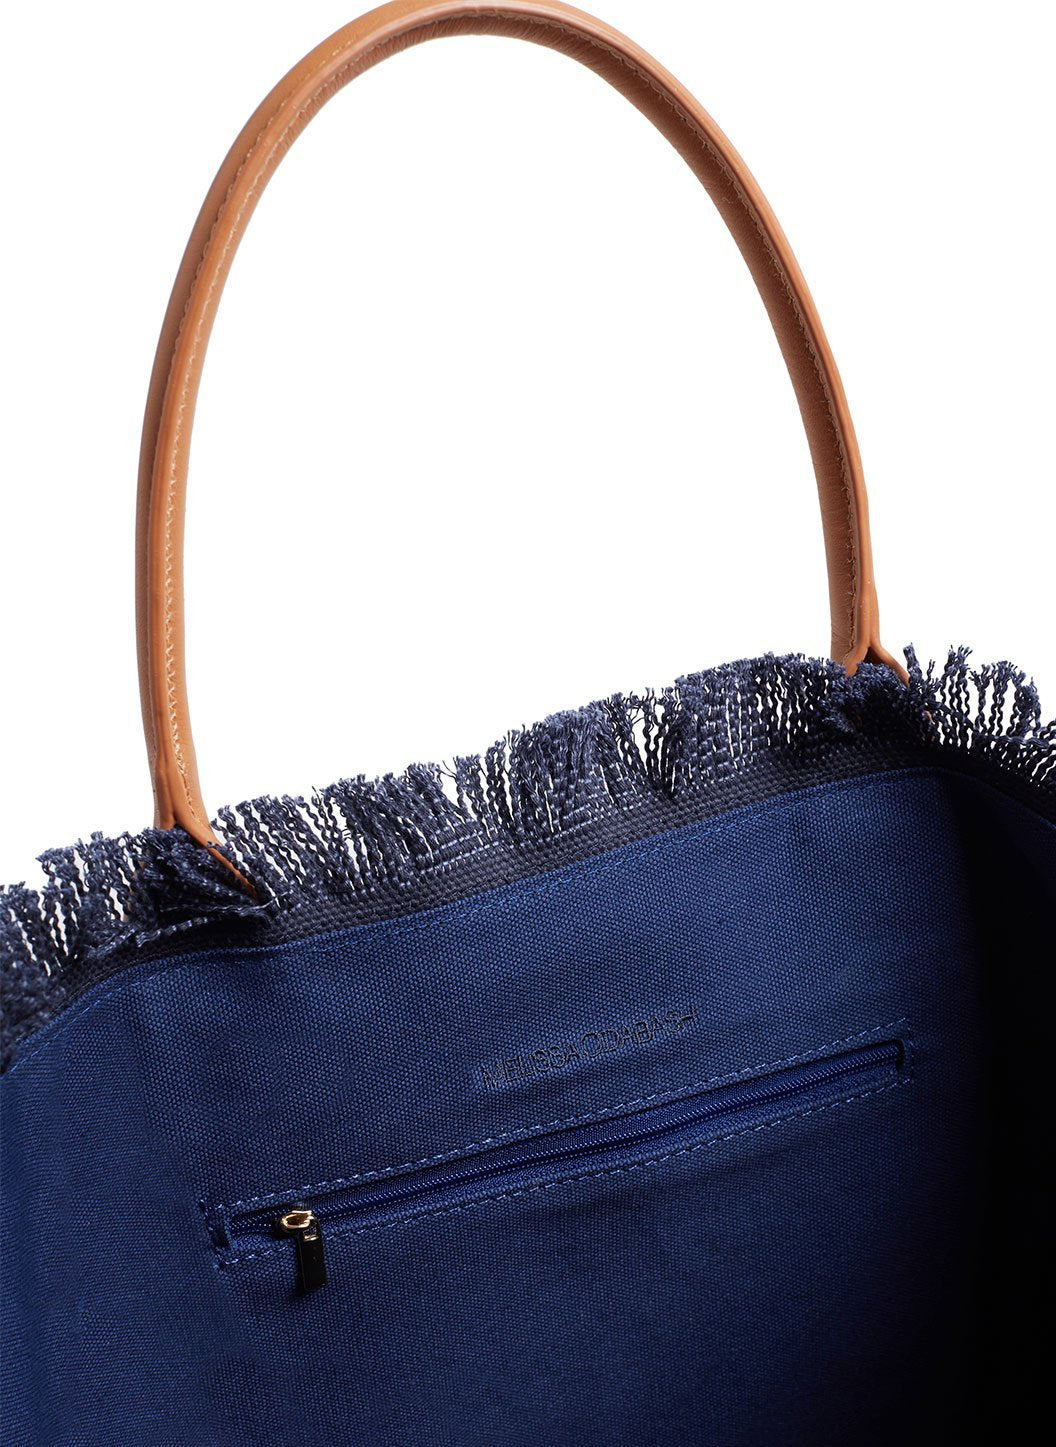 cap ferrat large beach tote navy 3 2019